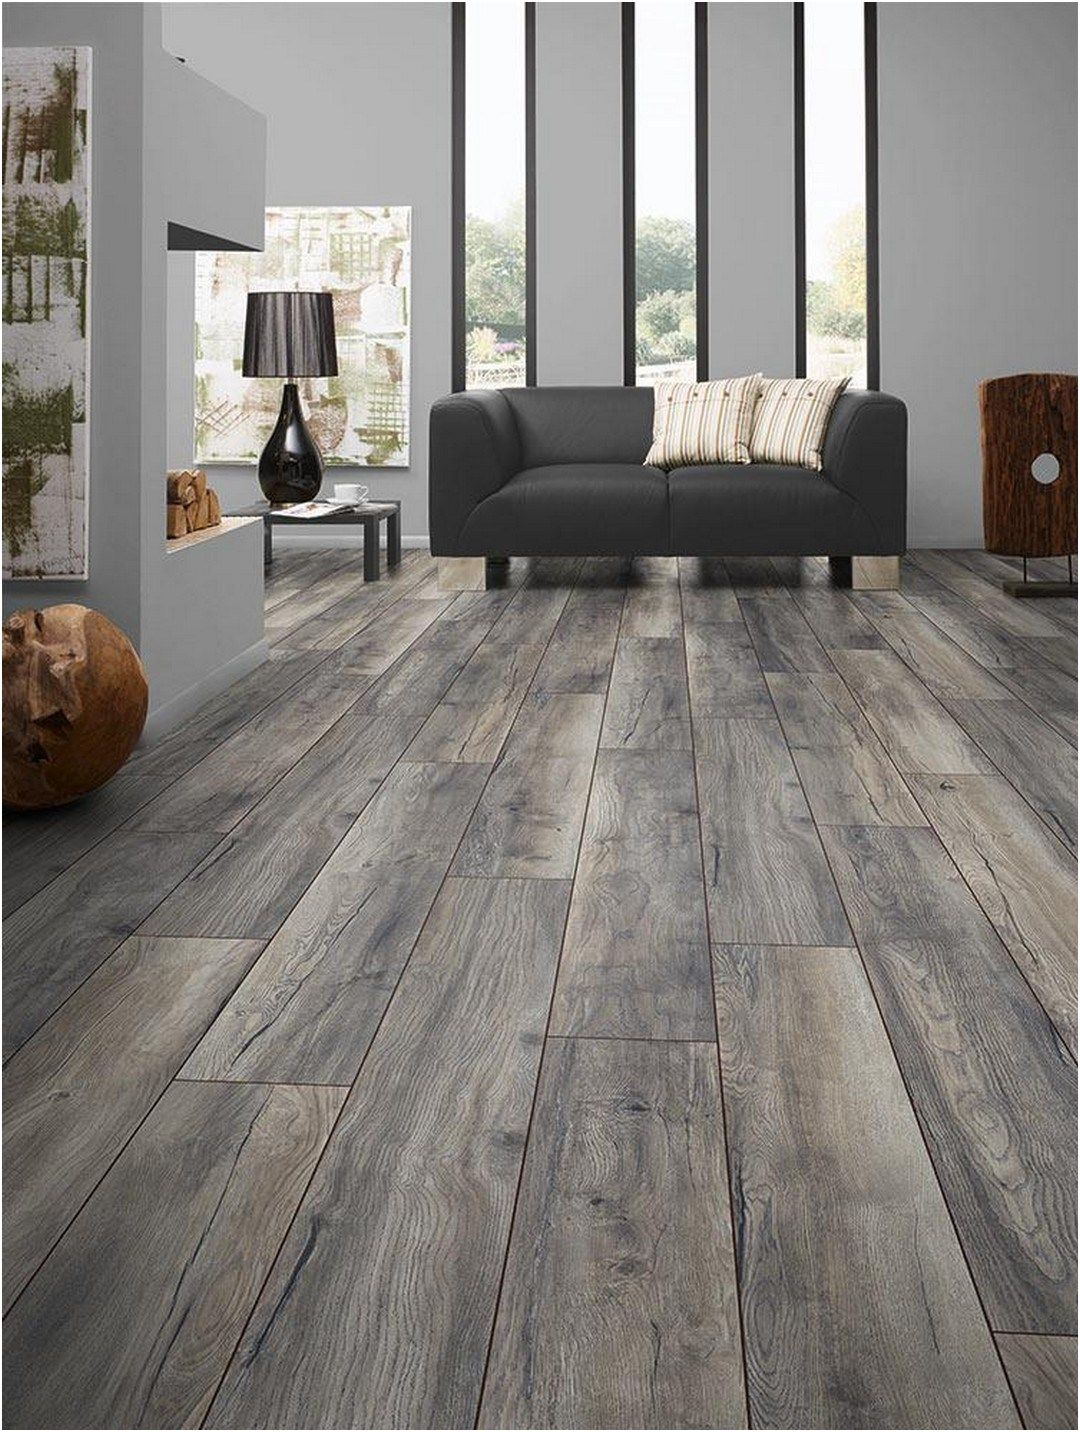 Lifeproof Rigid Core Vinyl Flooring Images Dark Gray Luxury Pvc